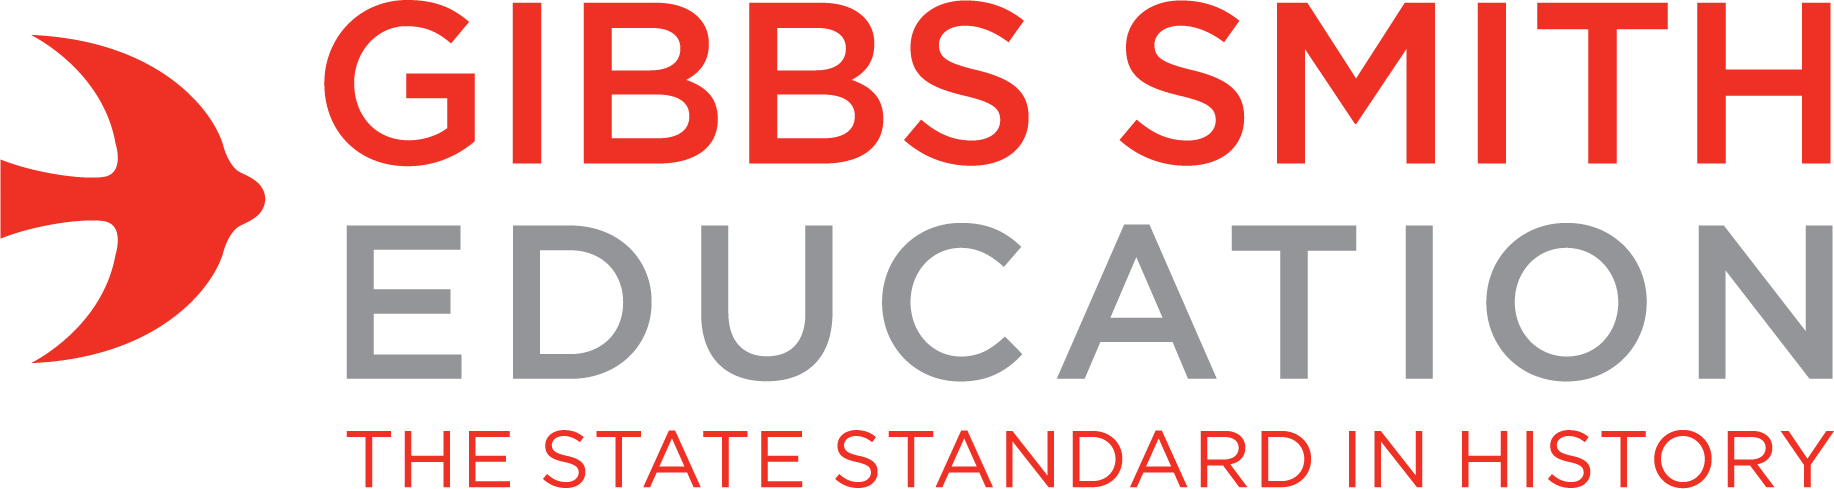 Gibbs Smith Education The State Standard in History